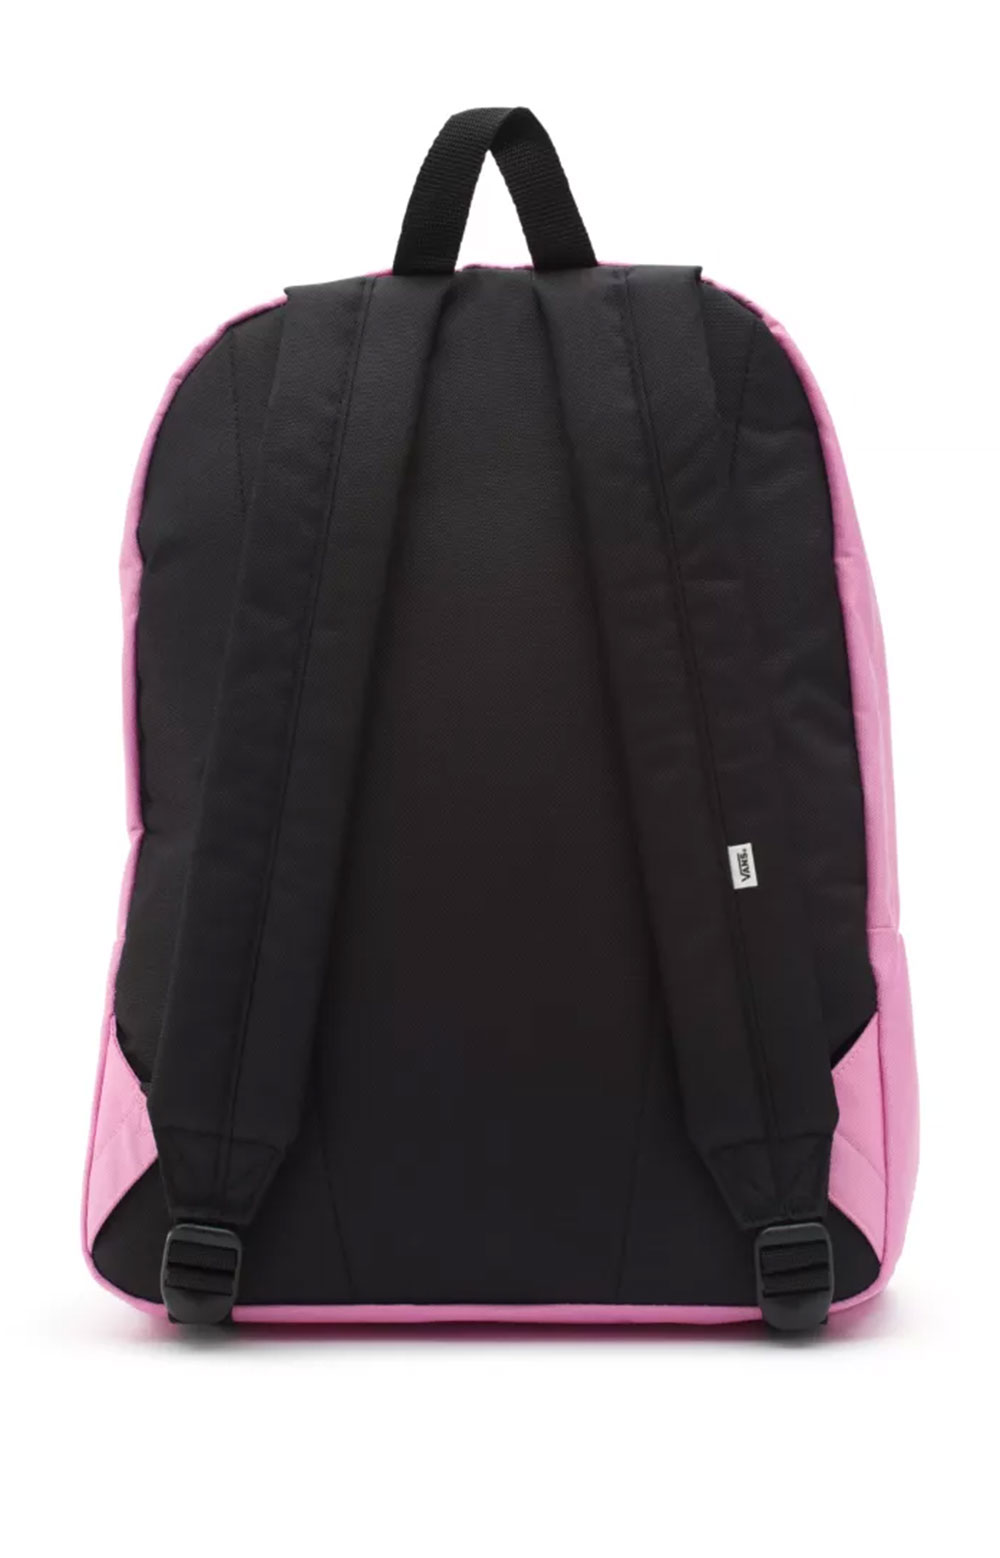 Realm Solid Backpack - Fuchsia Pink 3